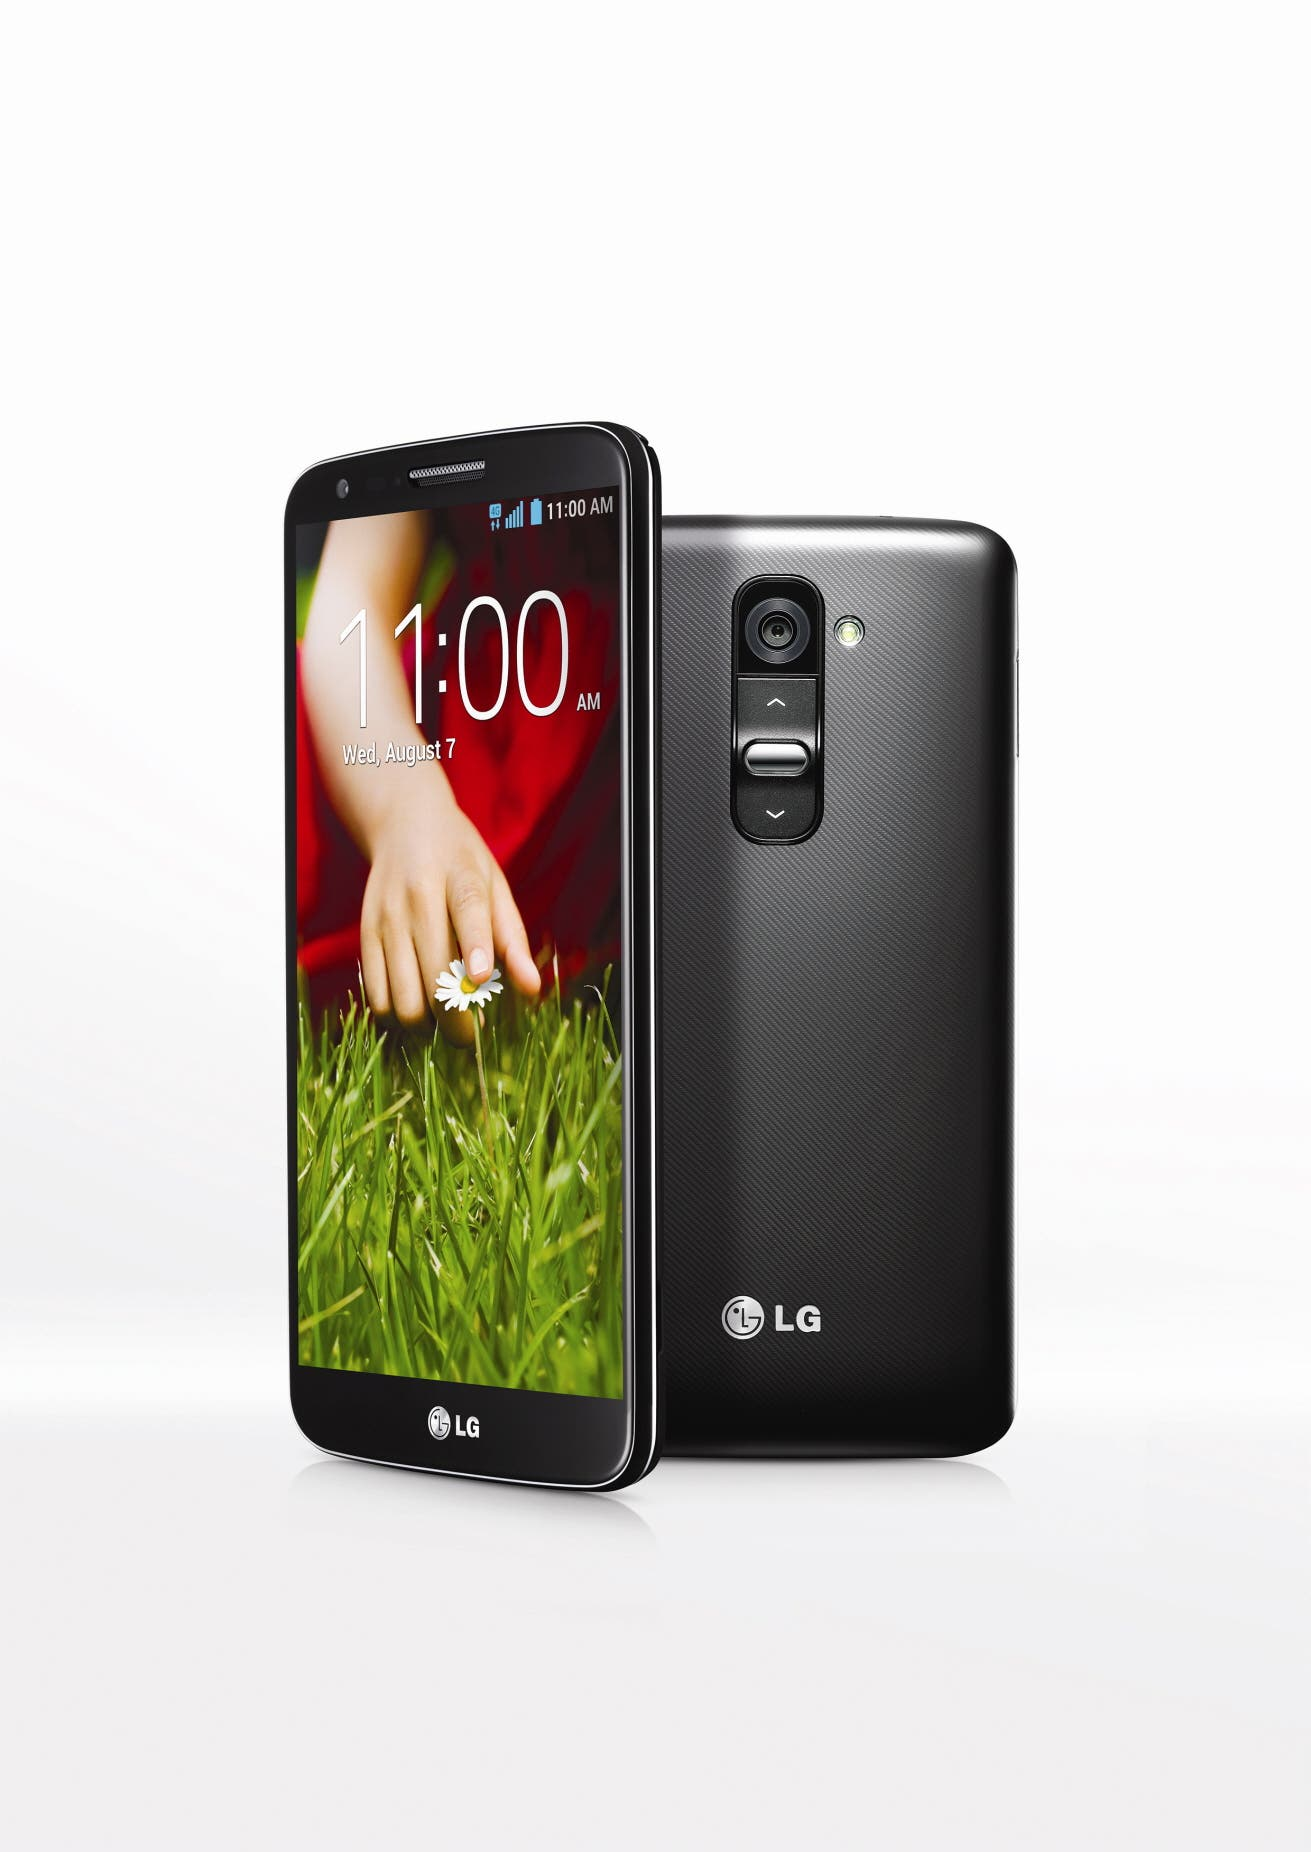 bild lg g2 News: iPhone 5C Handbuch, Unitymedia Horizon, LG G2 im September, Samsung Galaxy Note 3 Foto